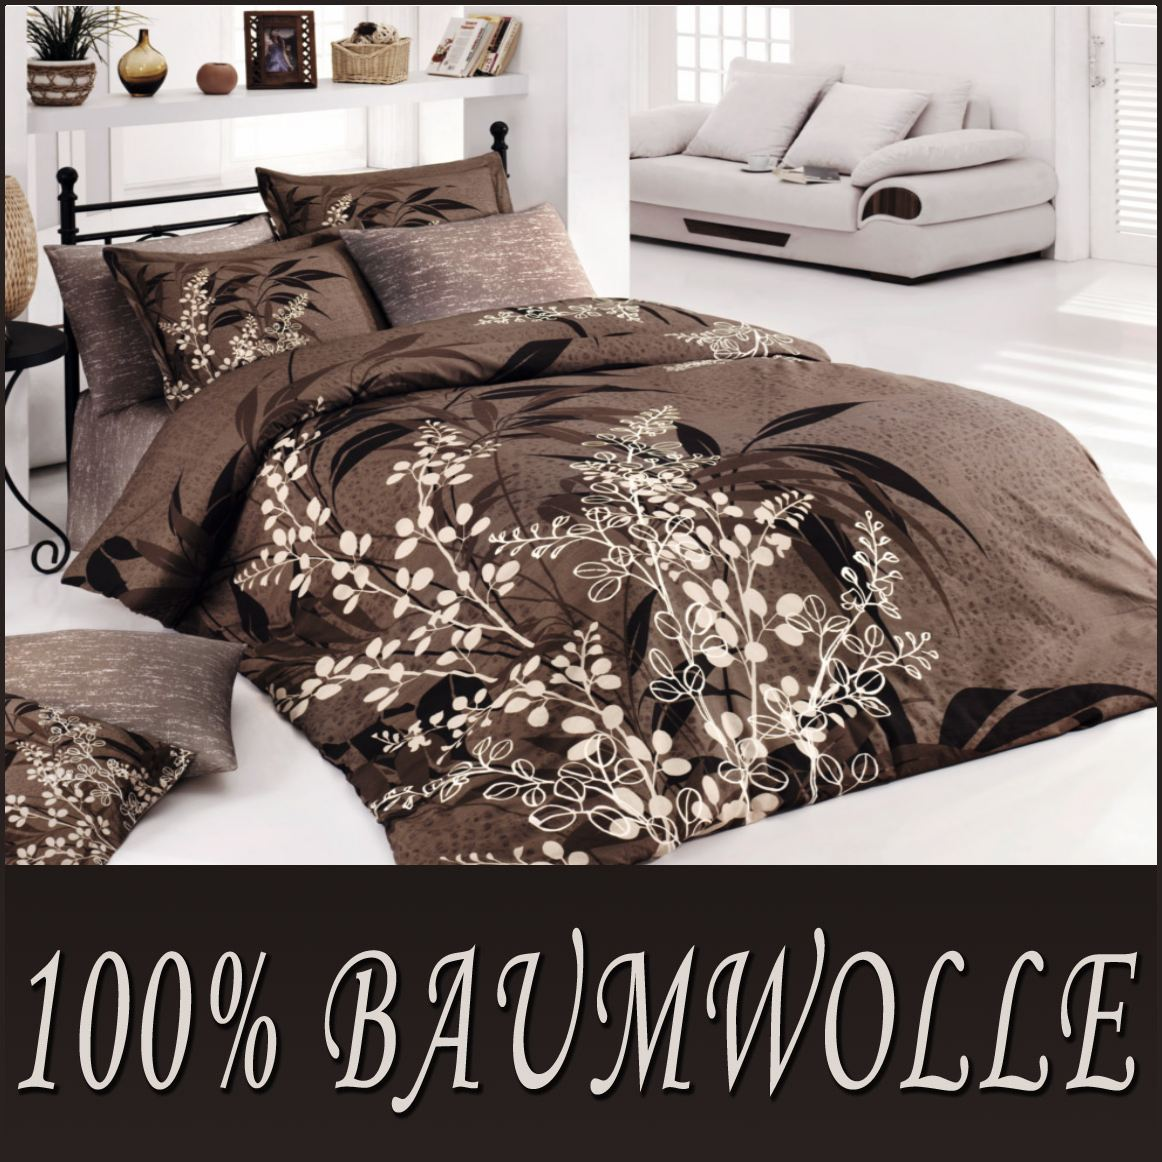 5 tlg bettw sche bettgarnitur 100 baumwolle kissen 200x200 cm akasya 02 neu ebay. Black Bedroom Furniture Sets. Home Design Ideas